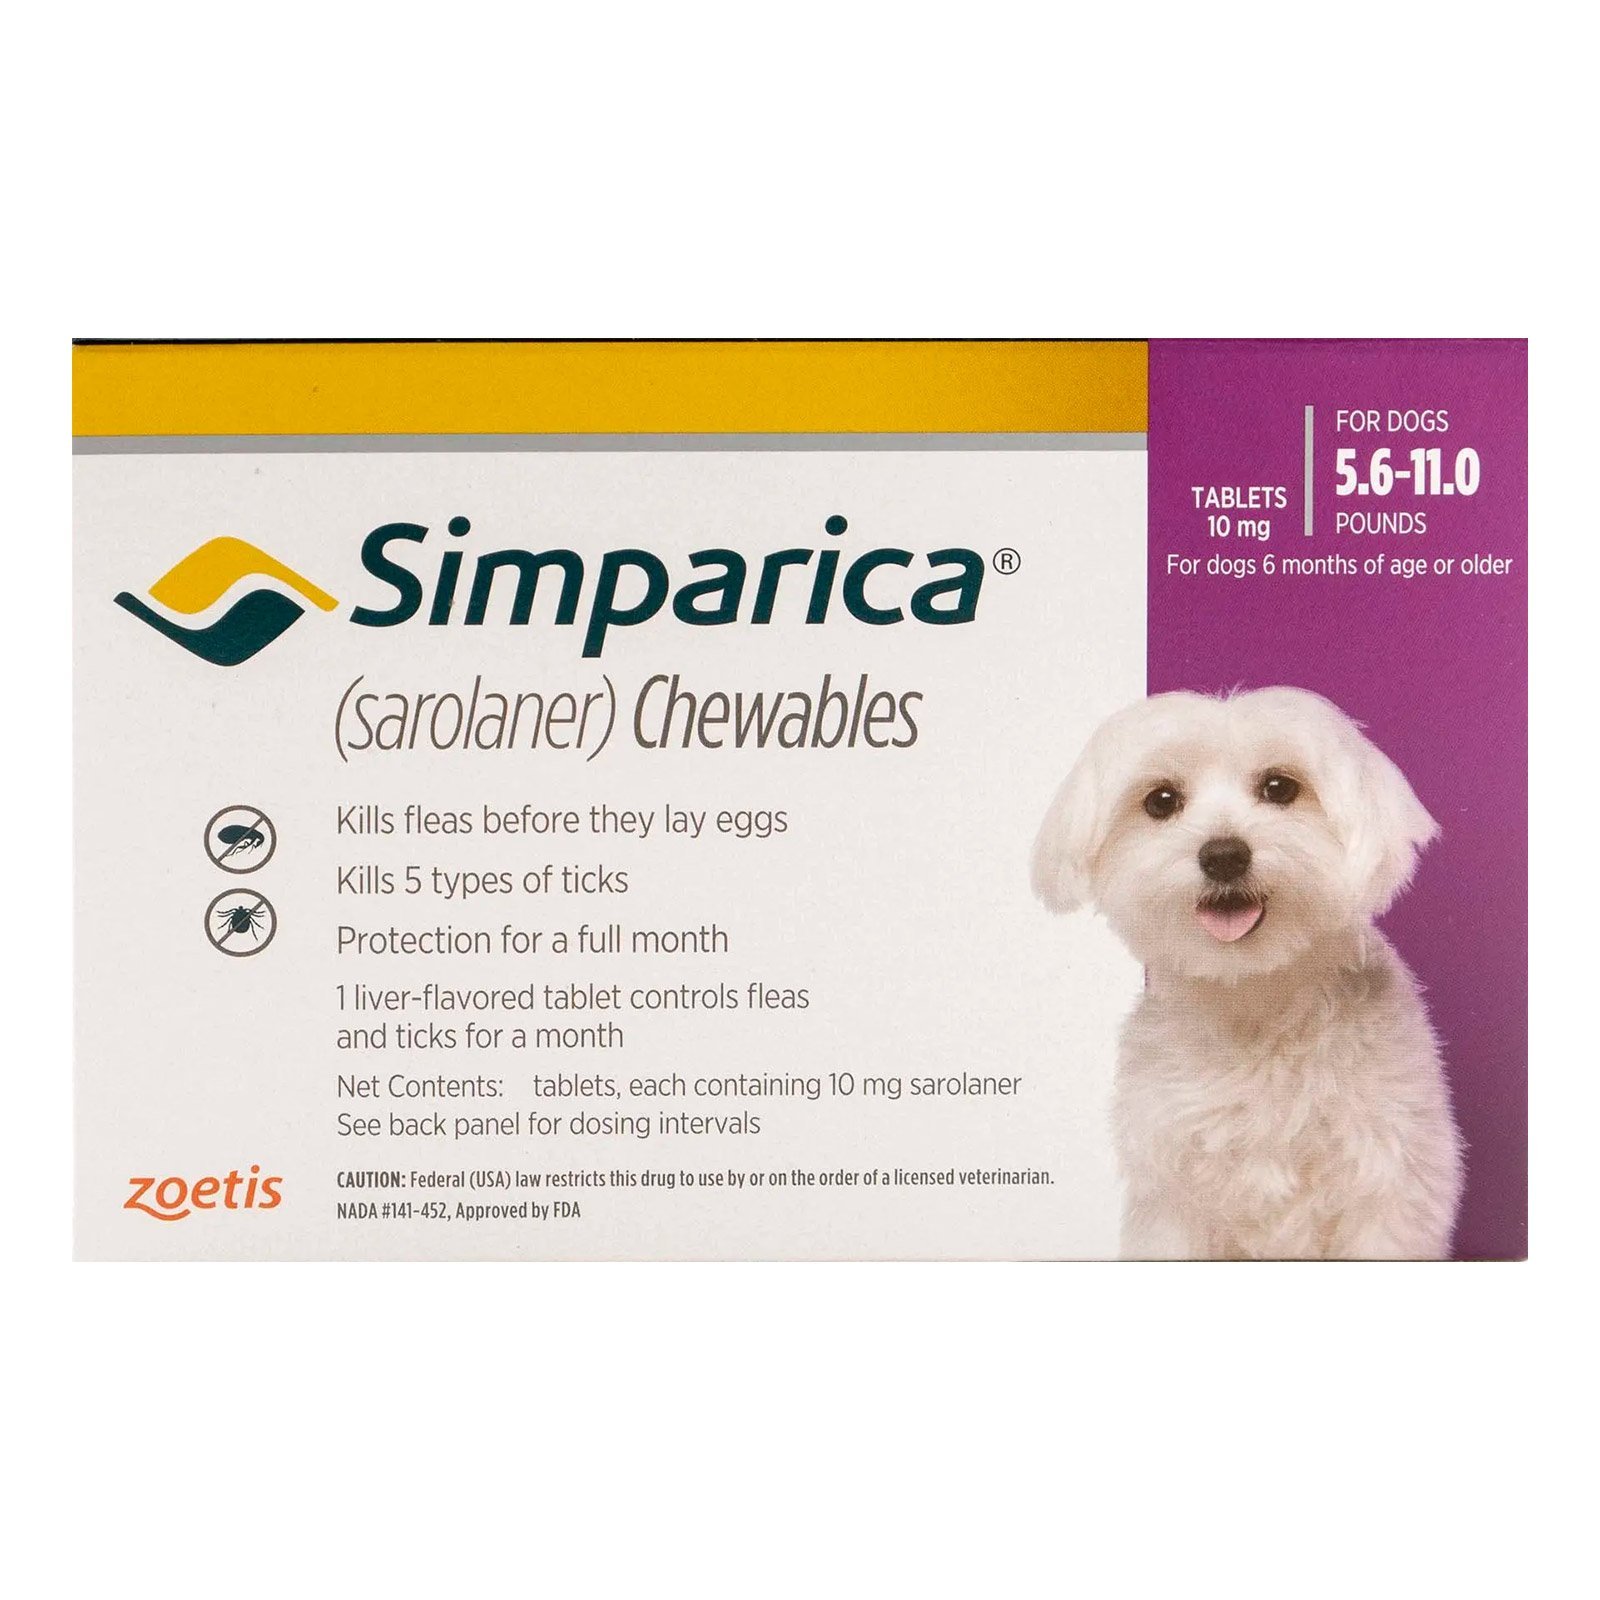 636855363950659772-simparica-5-9-11-0-lbs-1-chewable-tab-6[1]